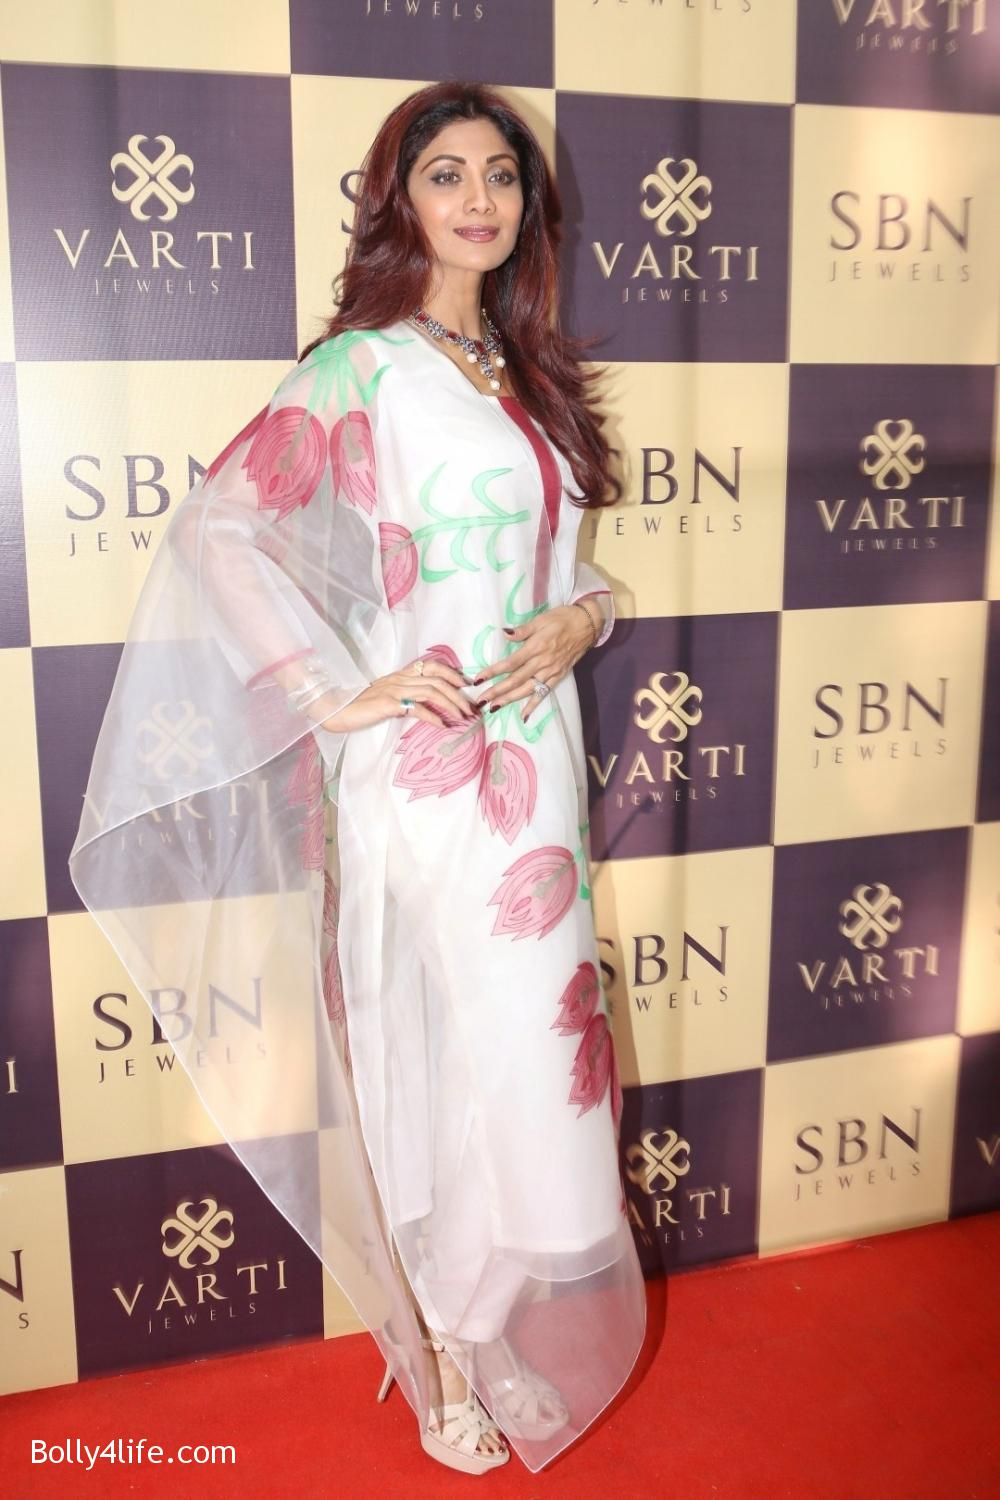 Shilpa-Shetty-inaugurates-jewellery-showroom-of-Varti-Jewells-12.jpg